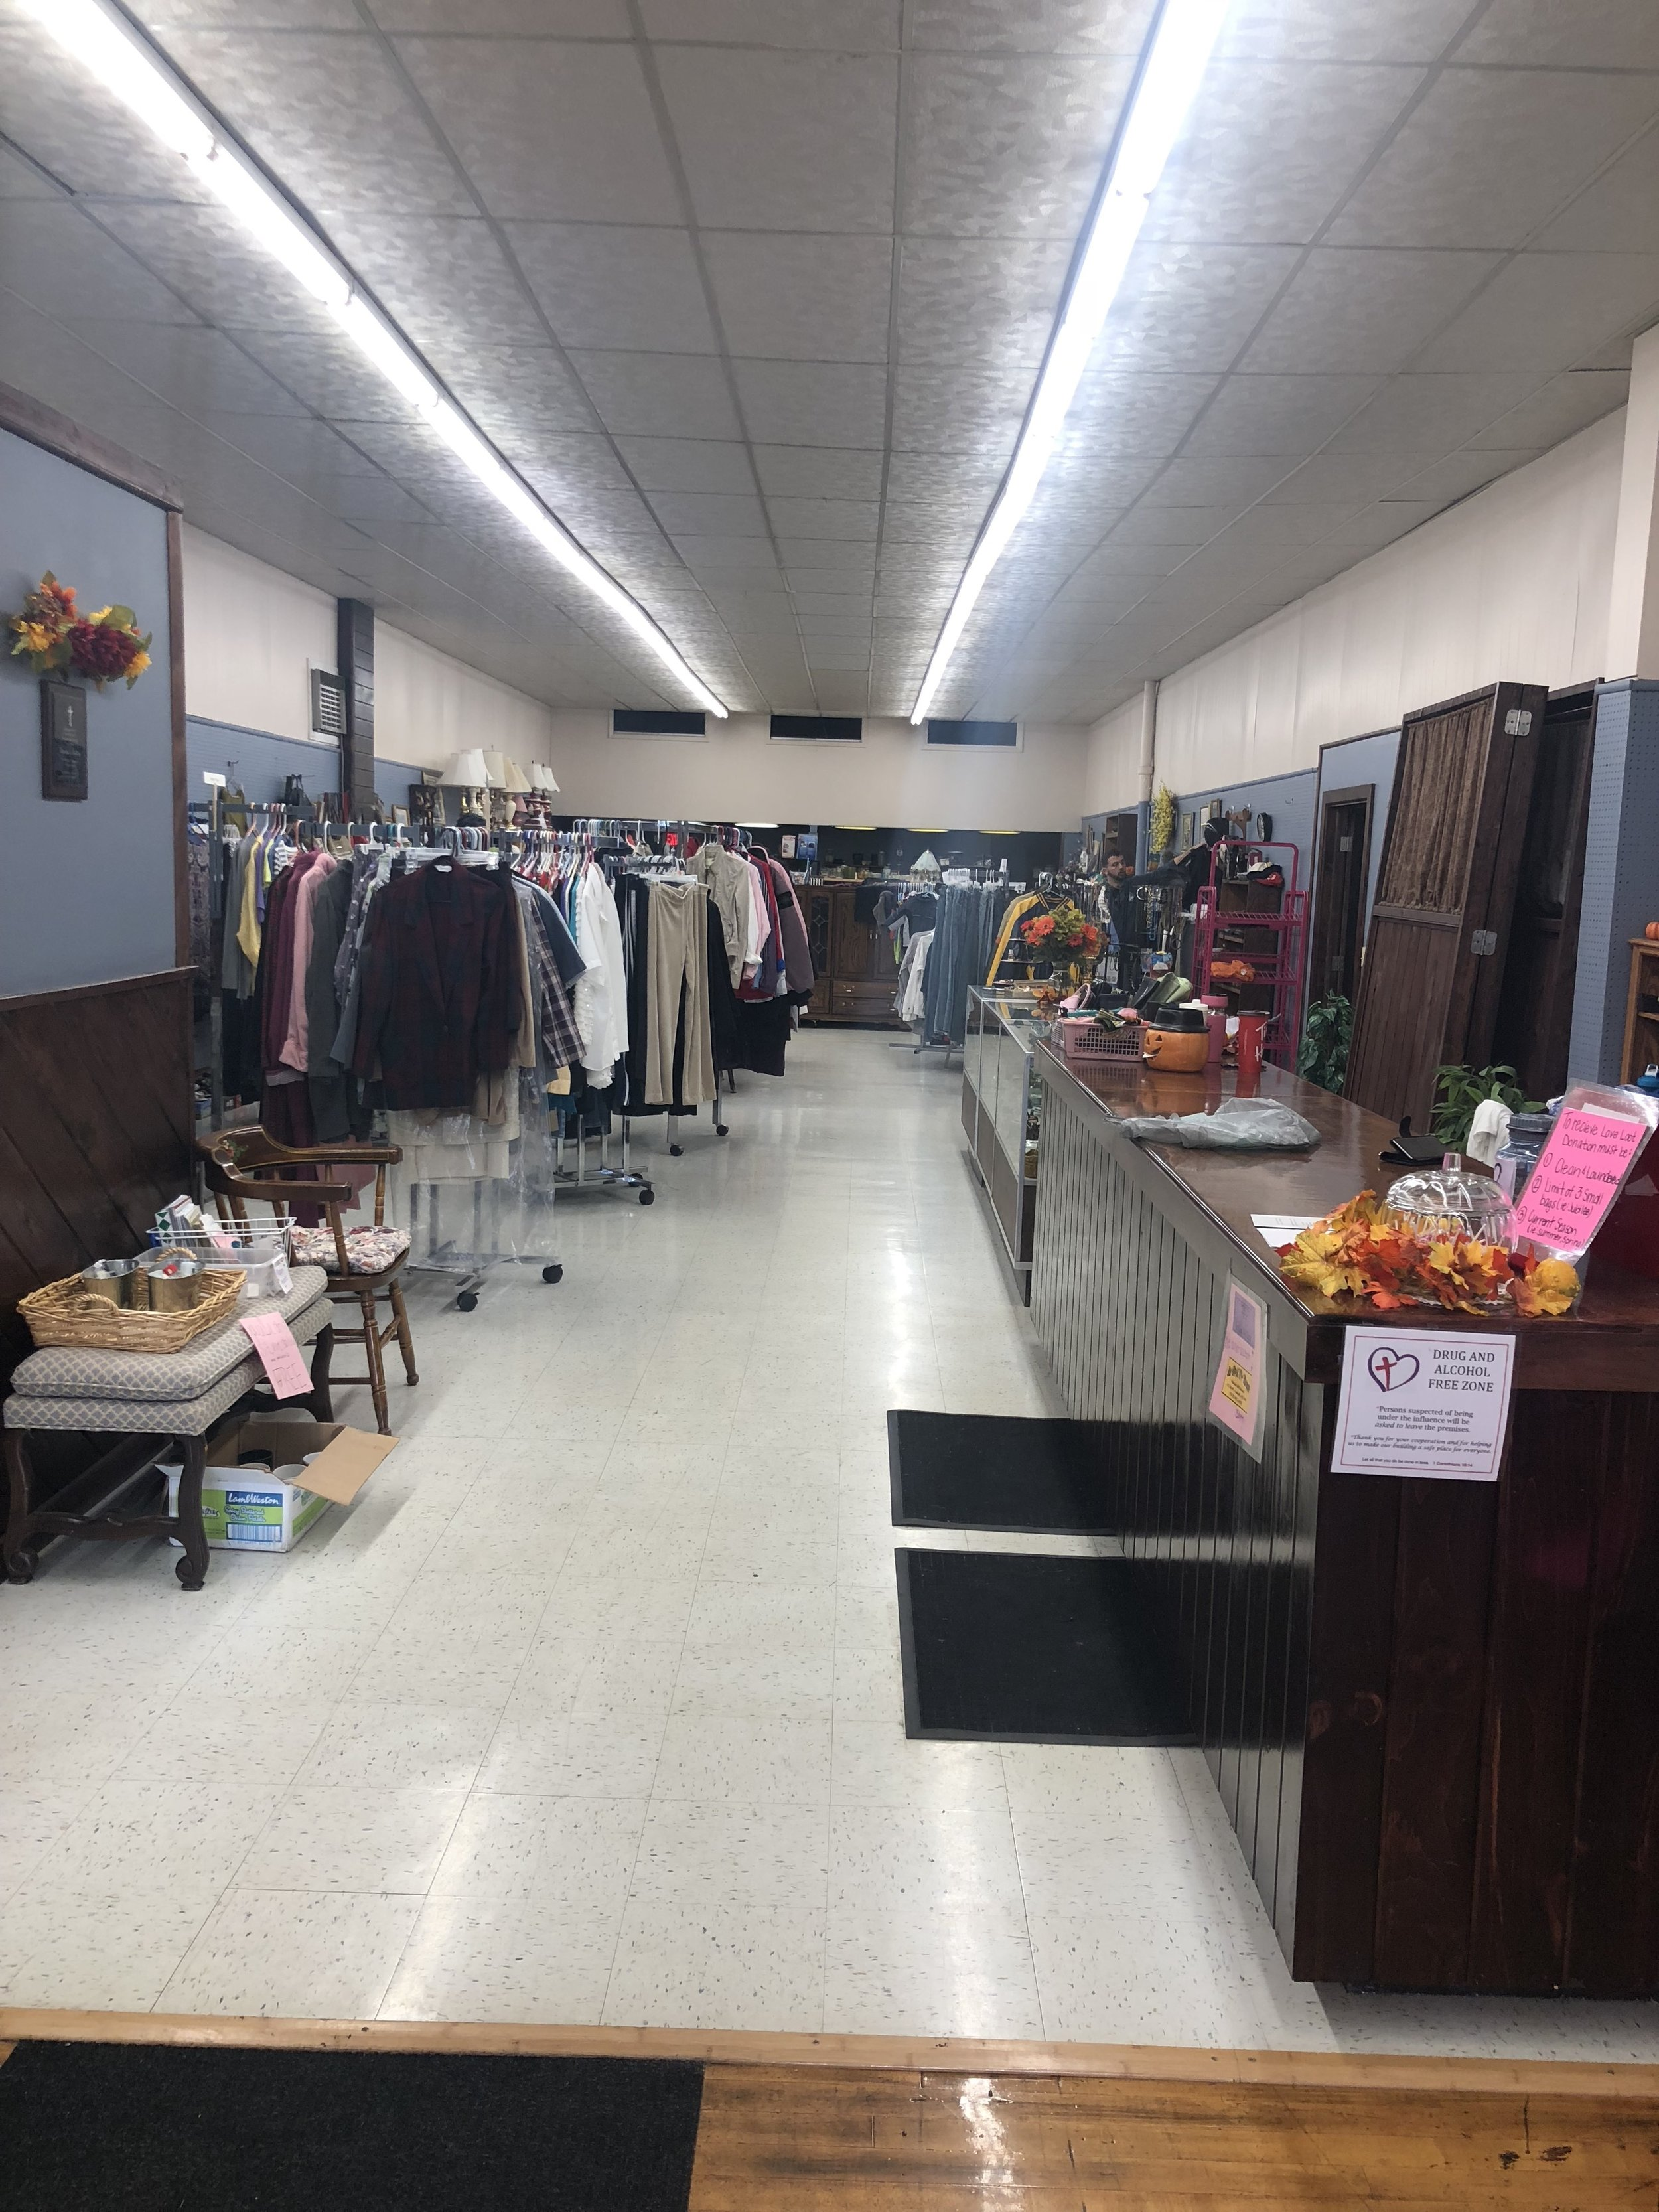 Helping Families - We offer used clothing, households items, some furniture and many other items available for a small donation. The idea of 2nd Chance Clothing and More is to help families on a small budget be able to come in and provide for themselves and their children their basic needs without breaking the bank!